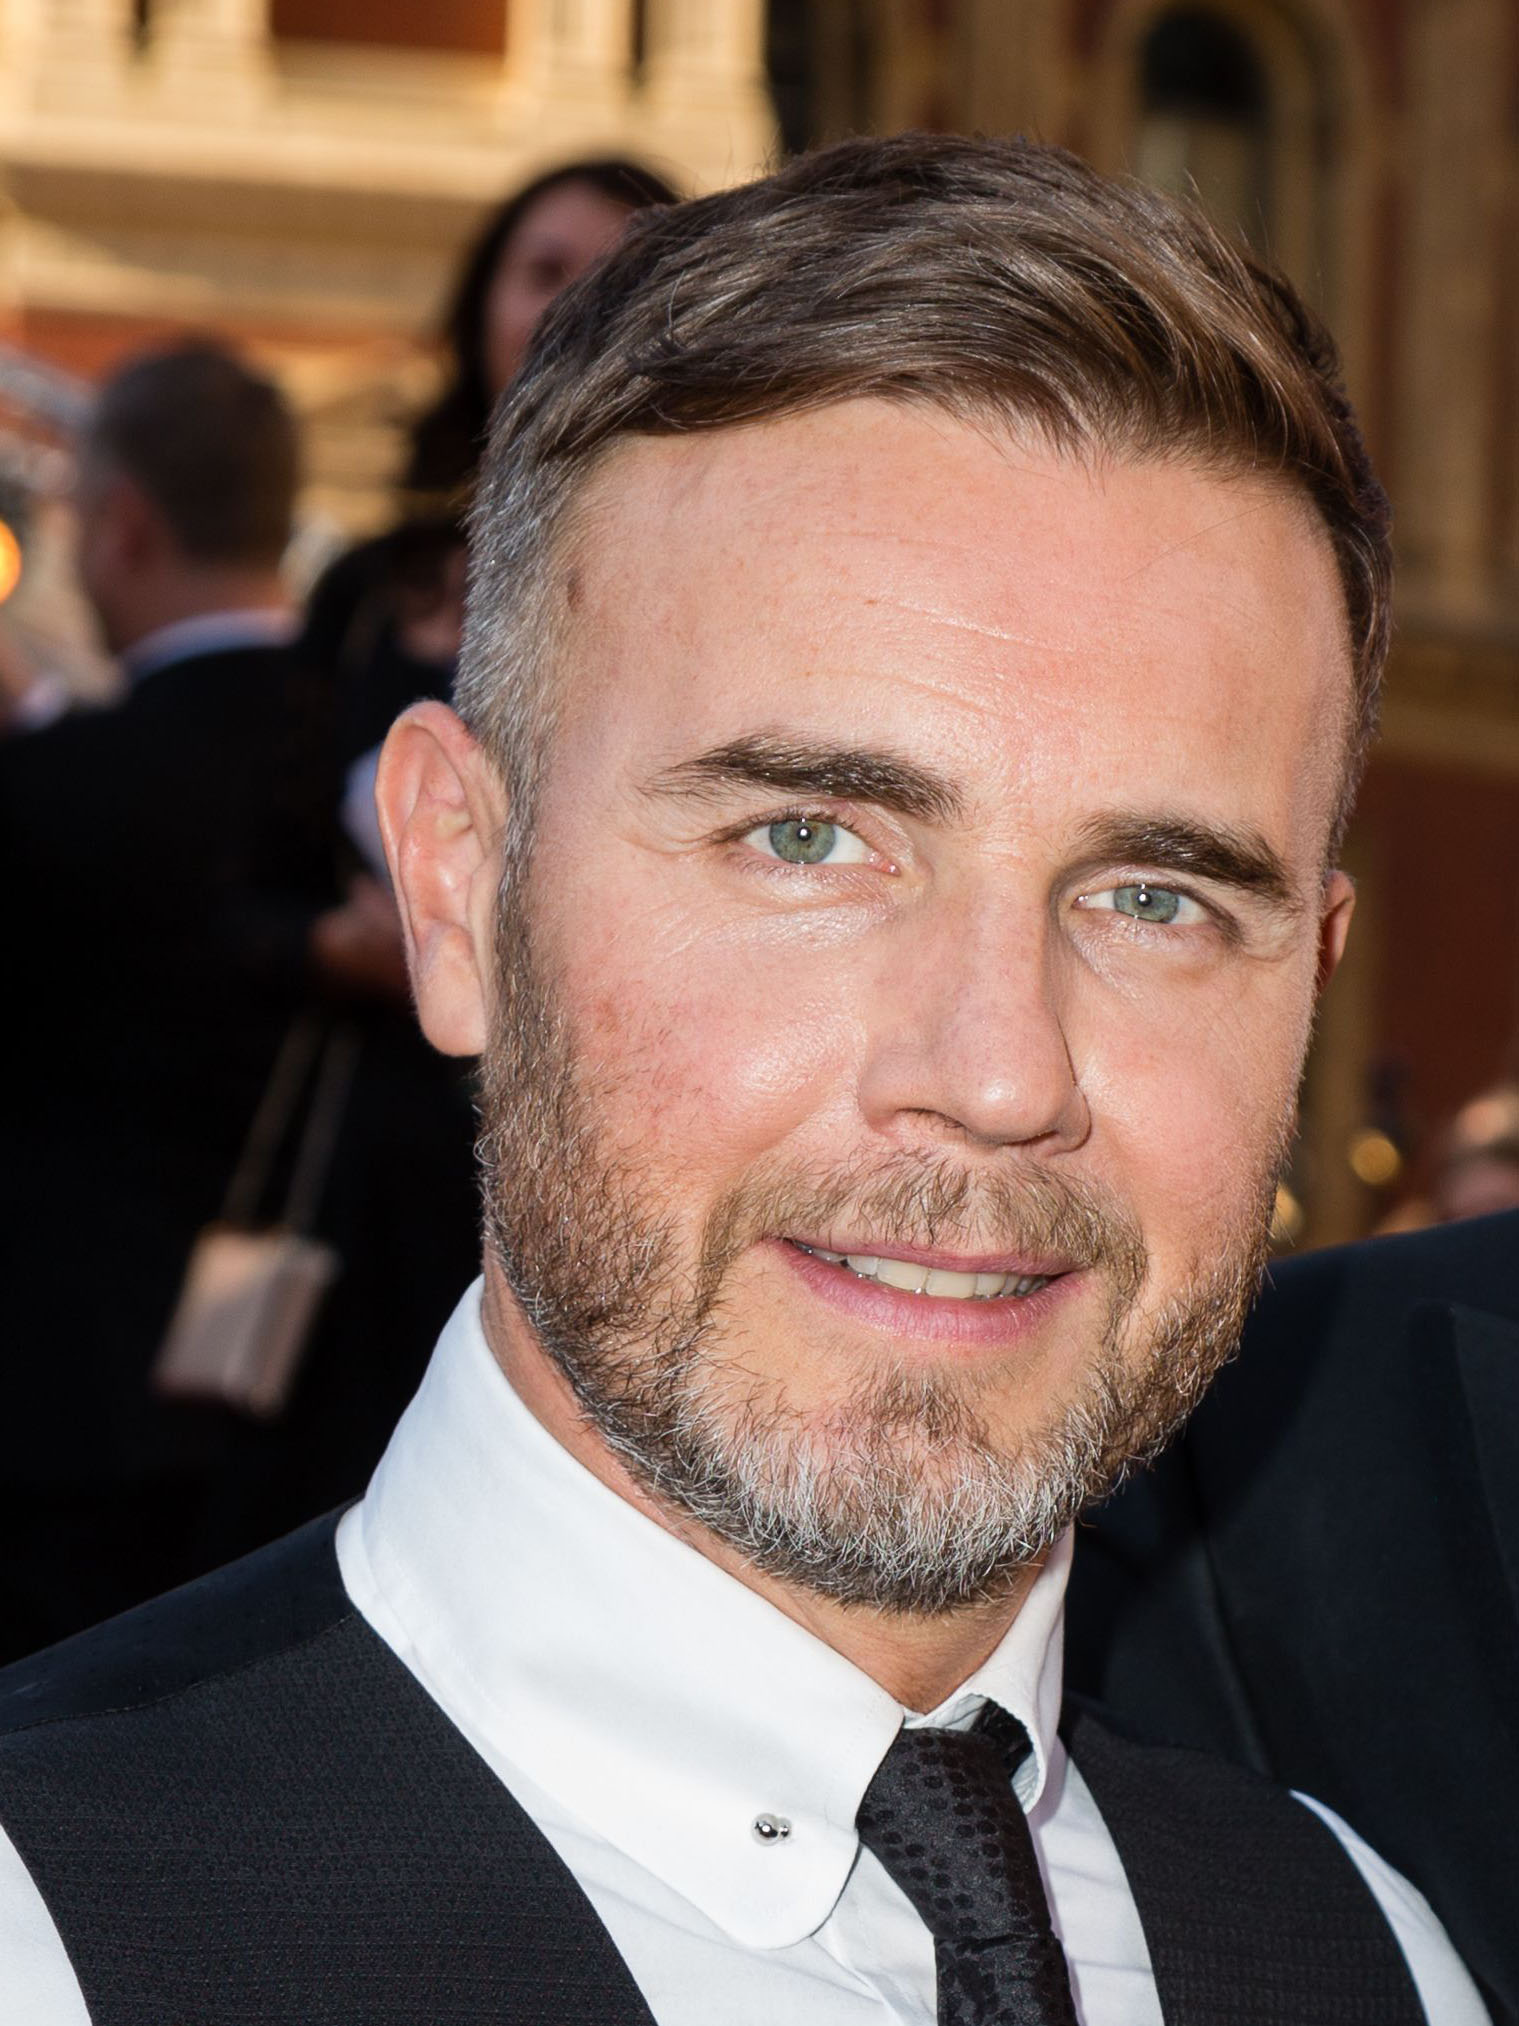 u0026 39 beautiful  u0026 39  gary barlow shares rare picture of his wife